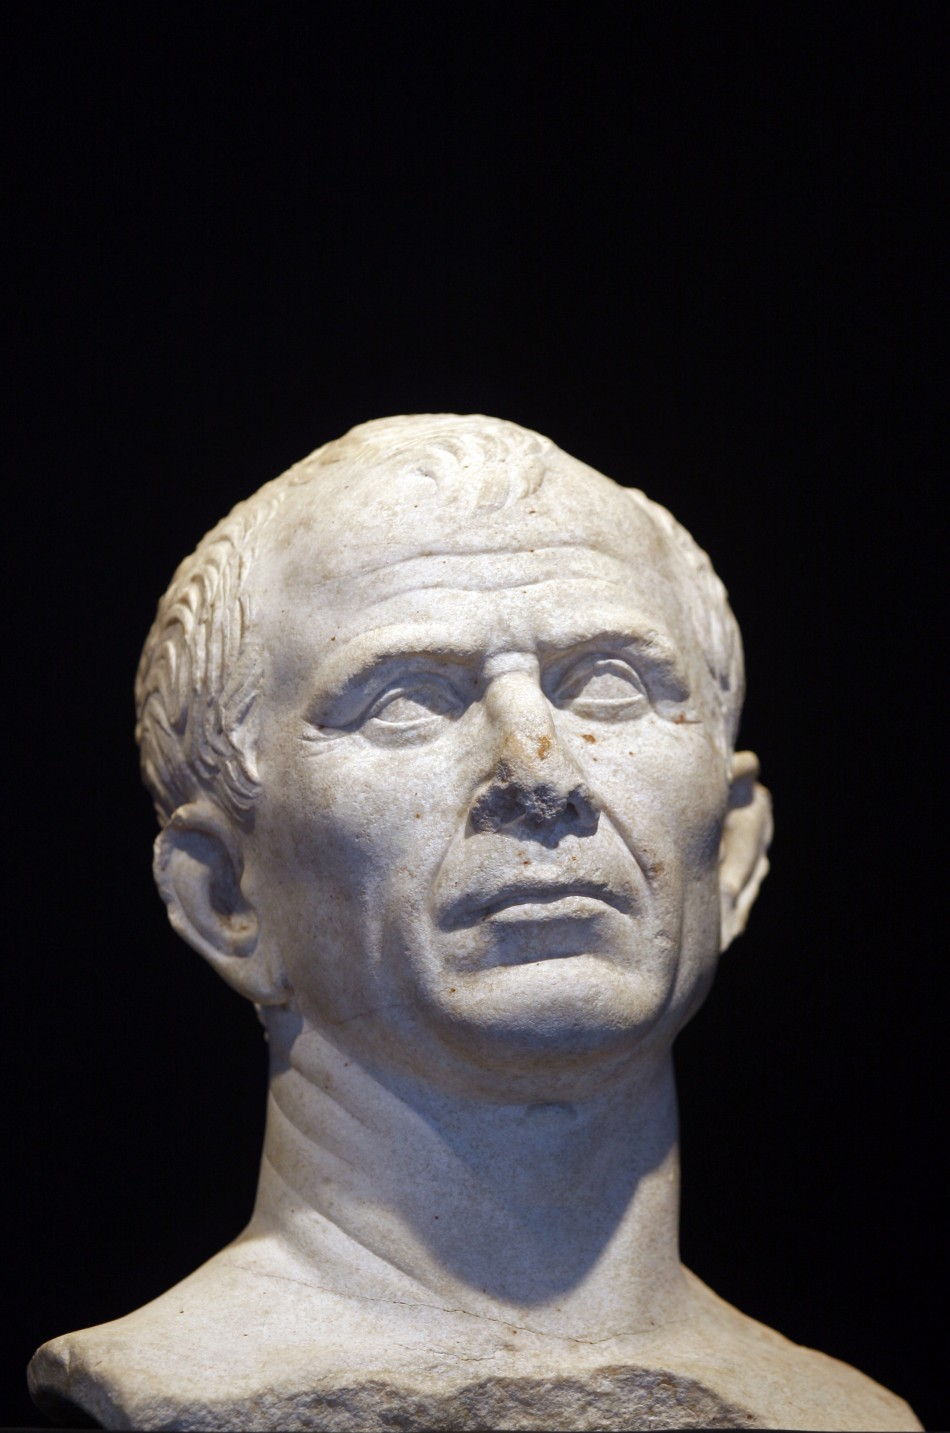 """As Shakespeare's Caesar said to the clairvoyant just moments before his death, """"The ides of March are come."""""""